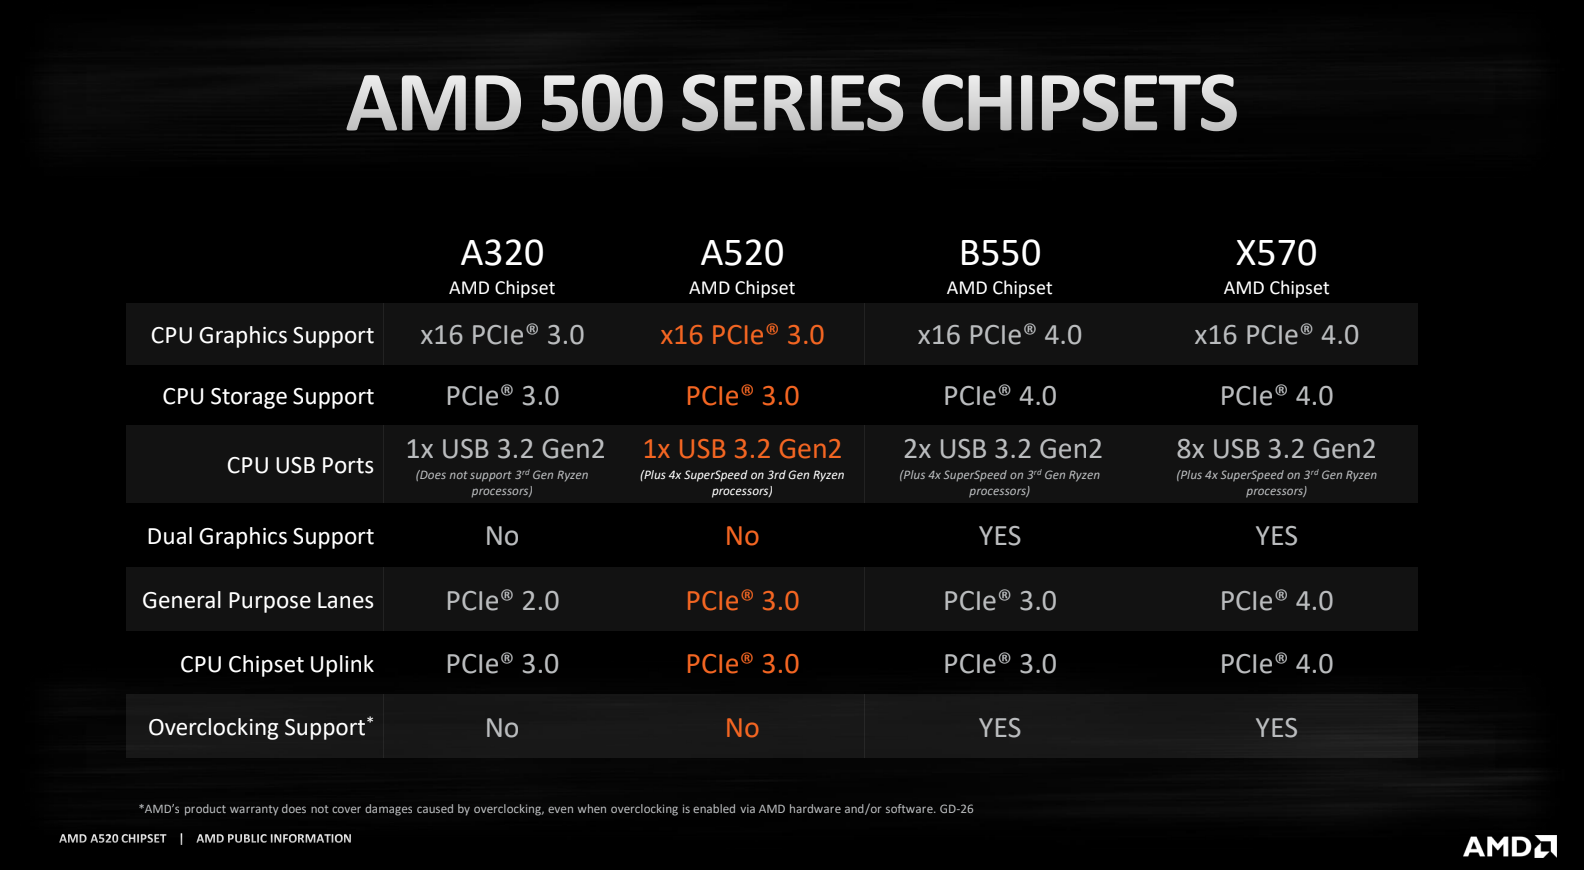 Amd A520 Chipset Specs Comparison Vs B550 A320 X570 More Gamersnexus Gaming Pc Builds Hardware Benchmarks